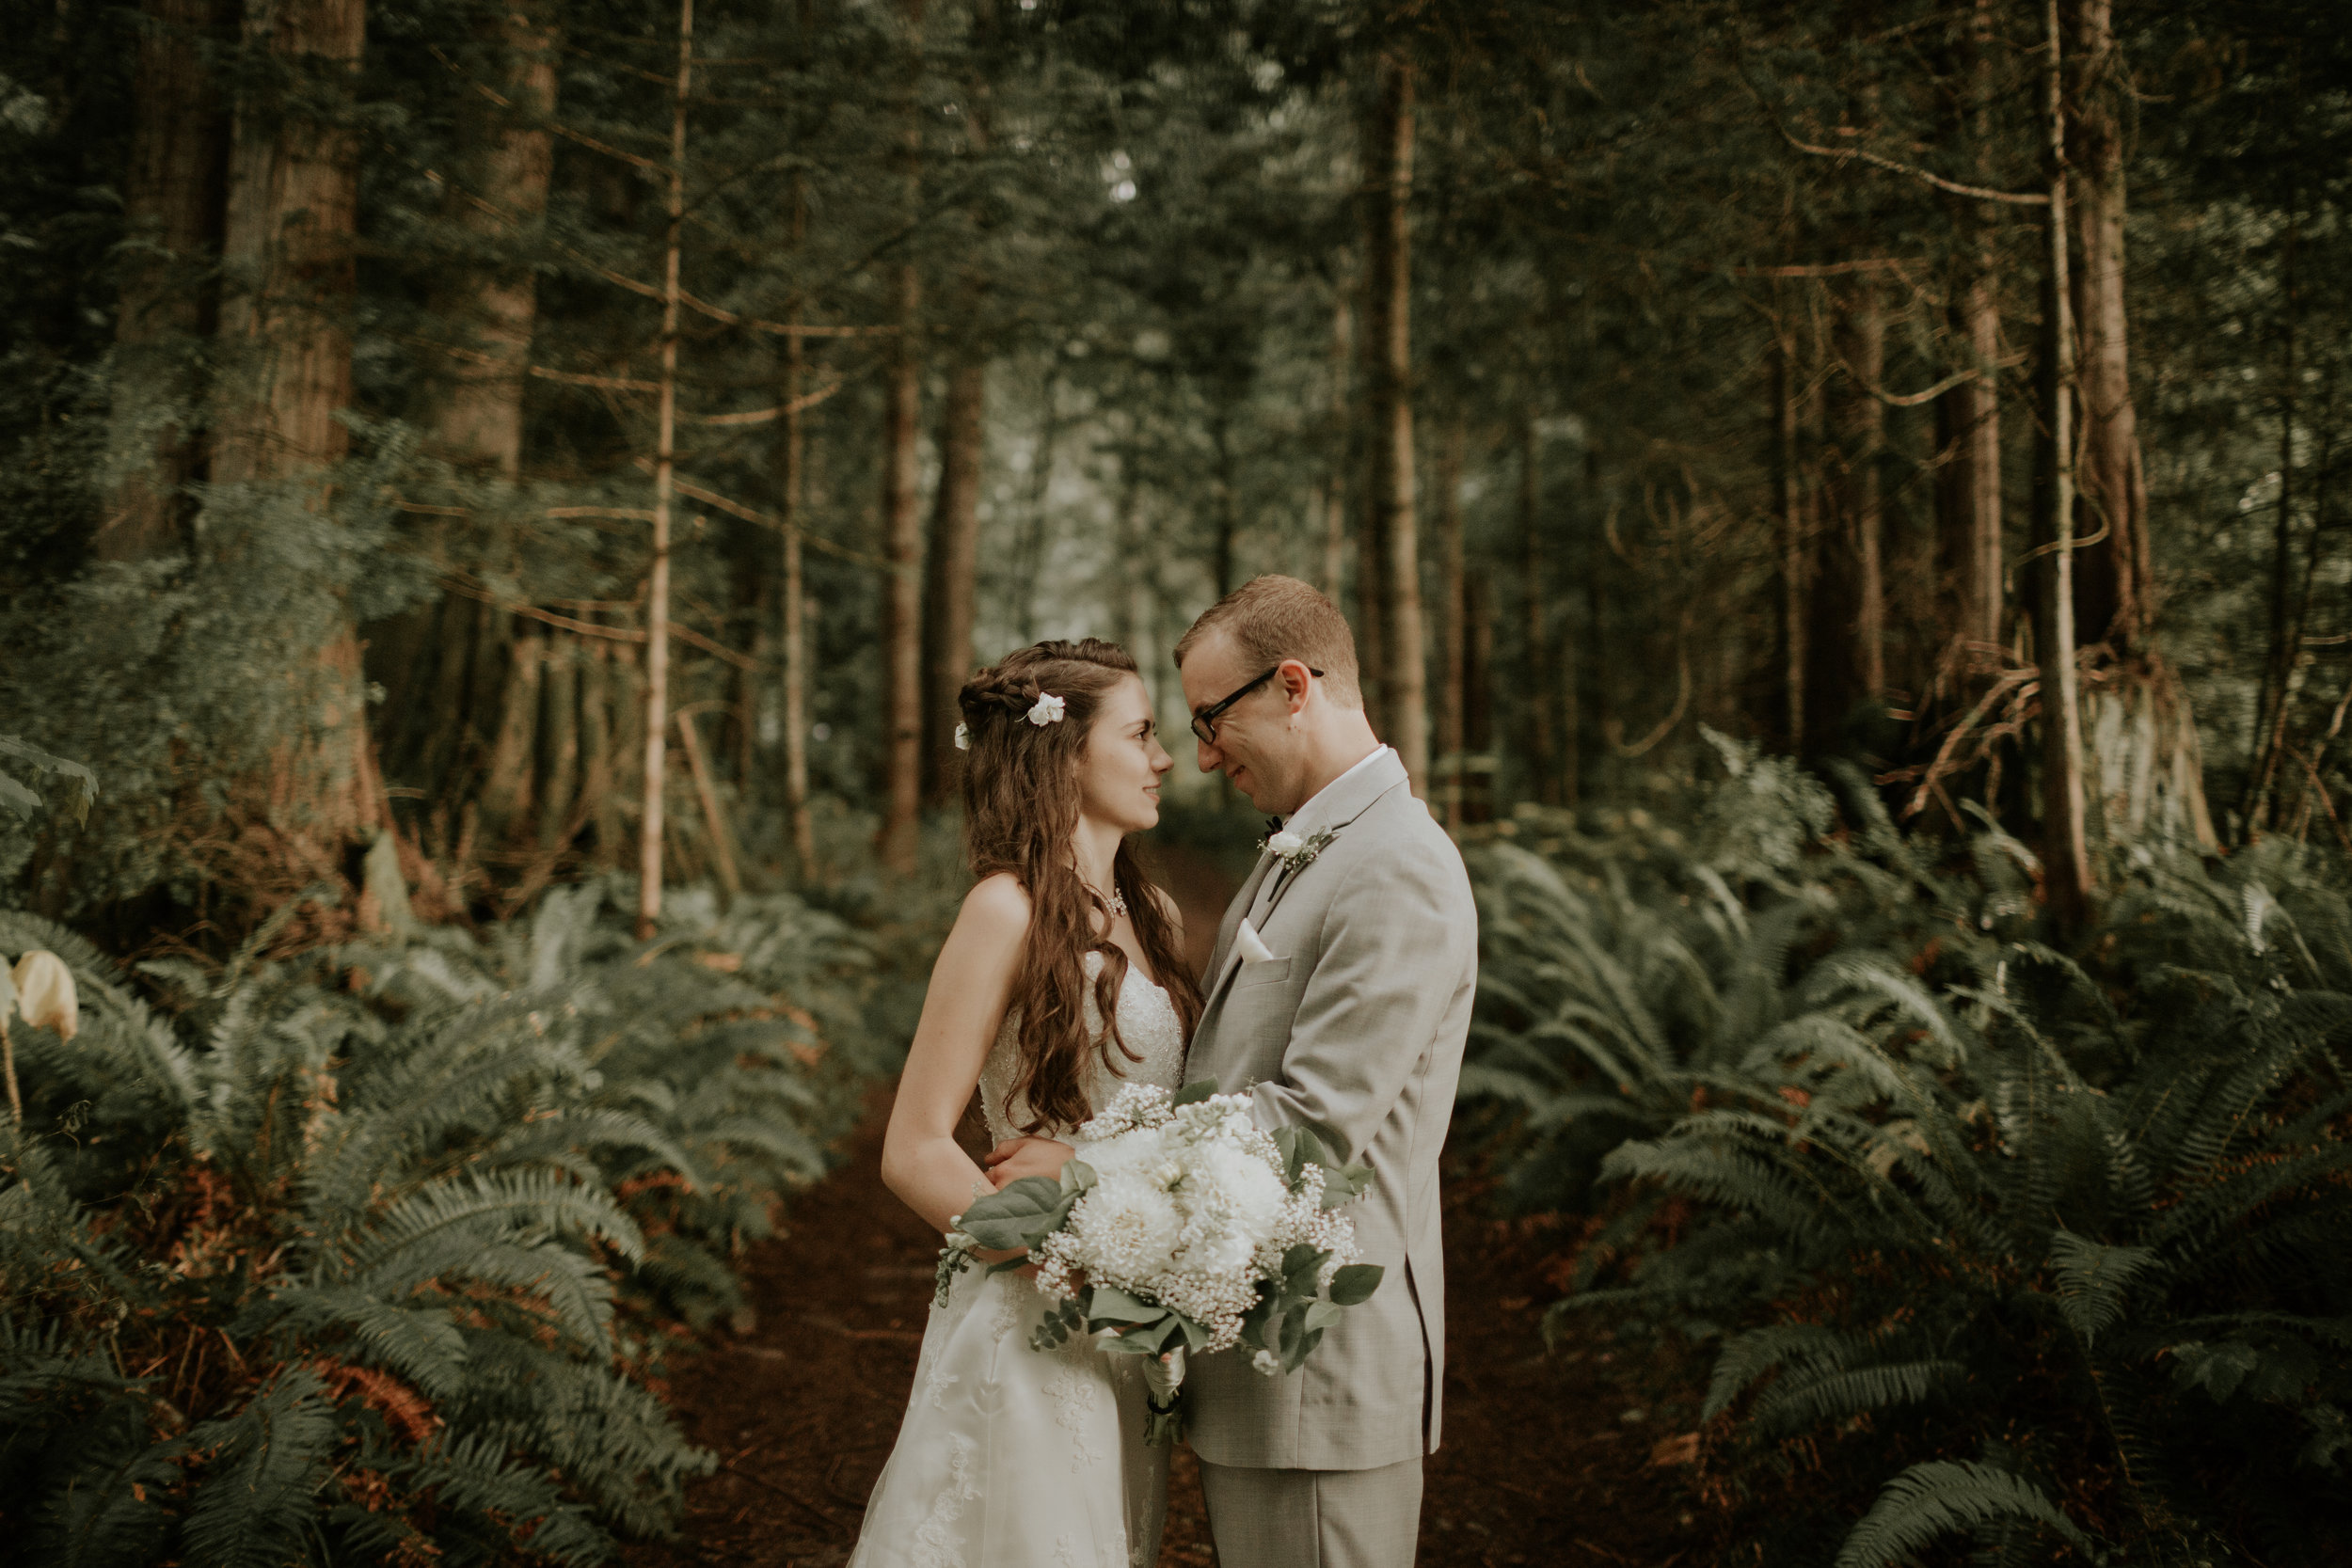 Port-Angeles-elopement-wedding-pnw-olympic-peninsula-photographer-portrait-kayladawnphoto-kayla-dawn-photography-olympic-national-park-193.jpg